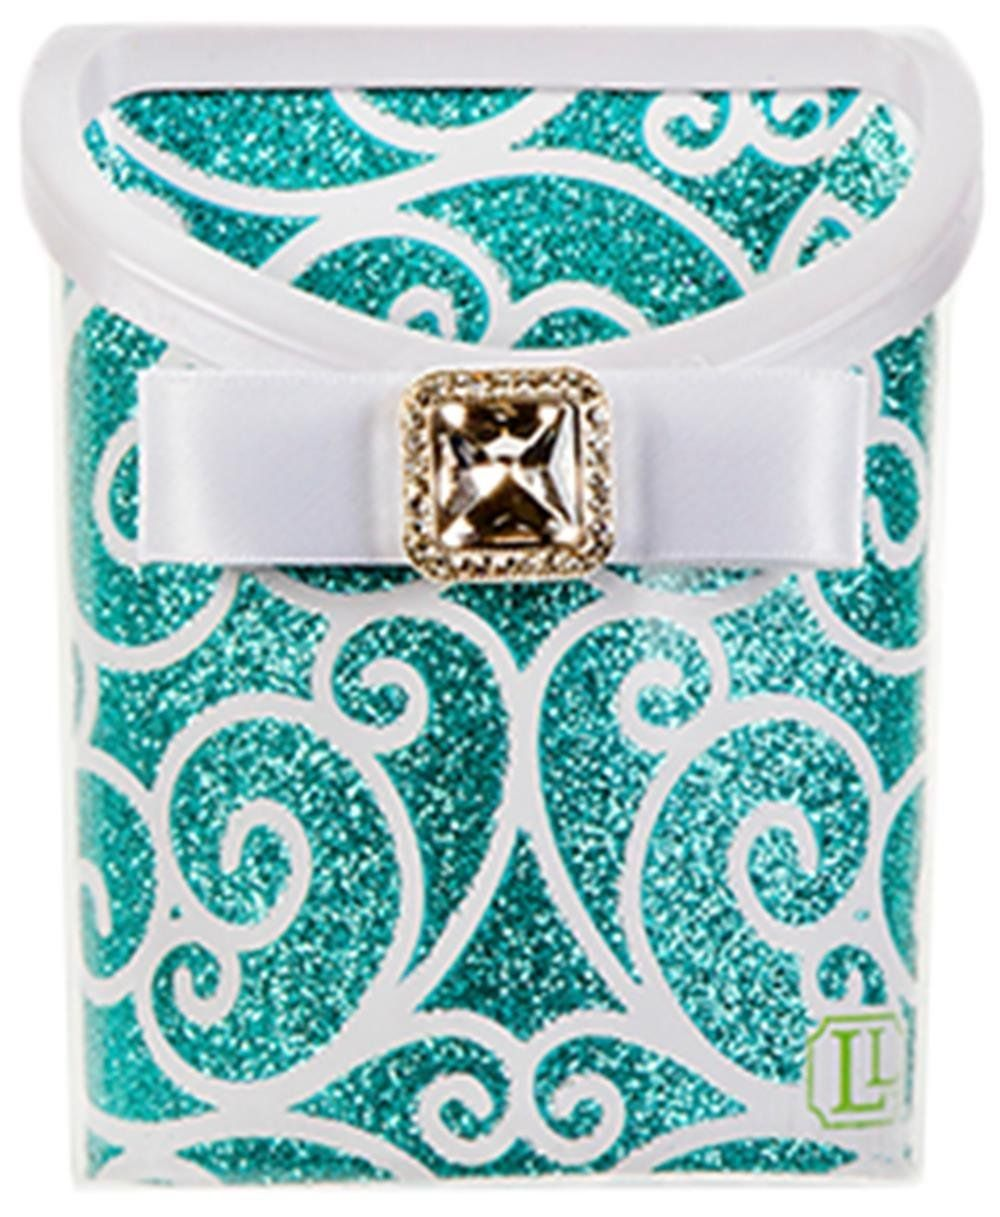 What a cute locker storage bin - sticks to your locker with magnets!  Perfect for holding pens or other small items. Locker Lookz Bins Blue Scroll #locker #bling